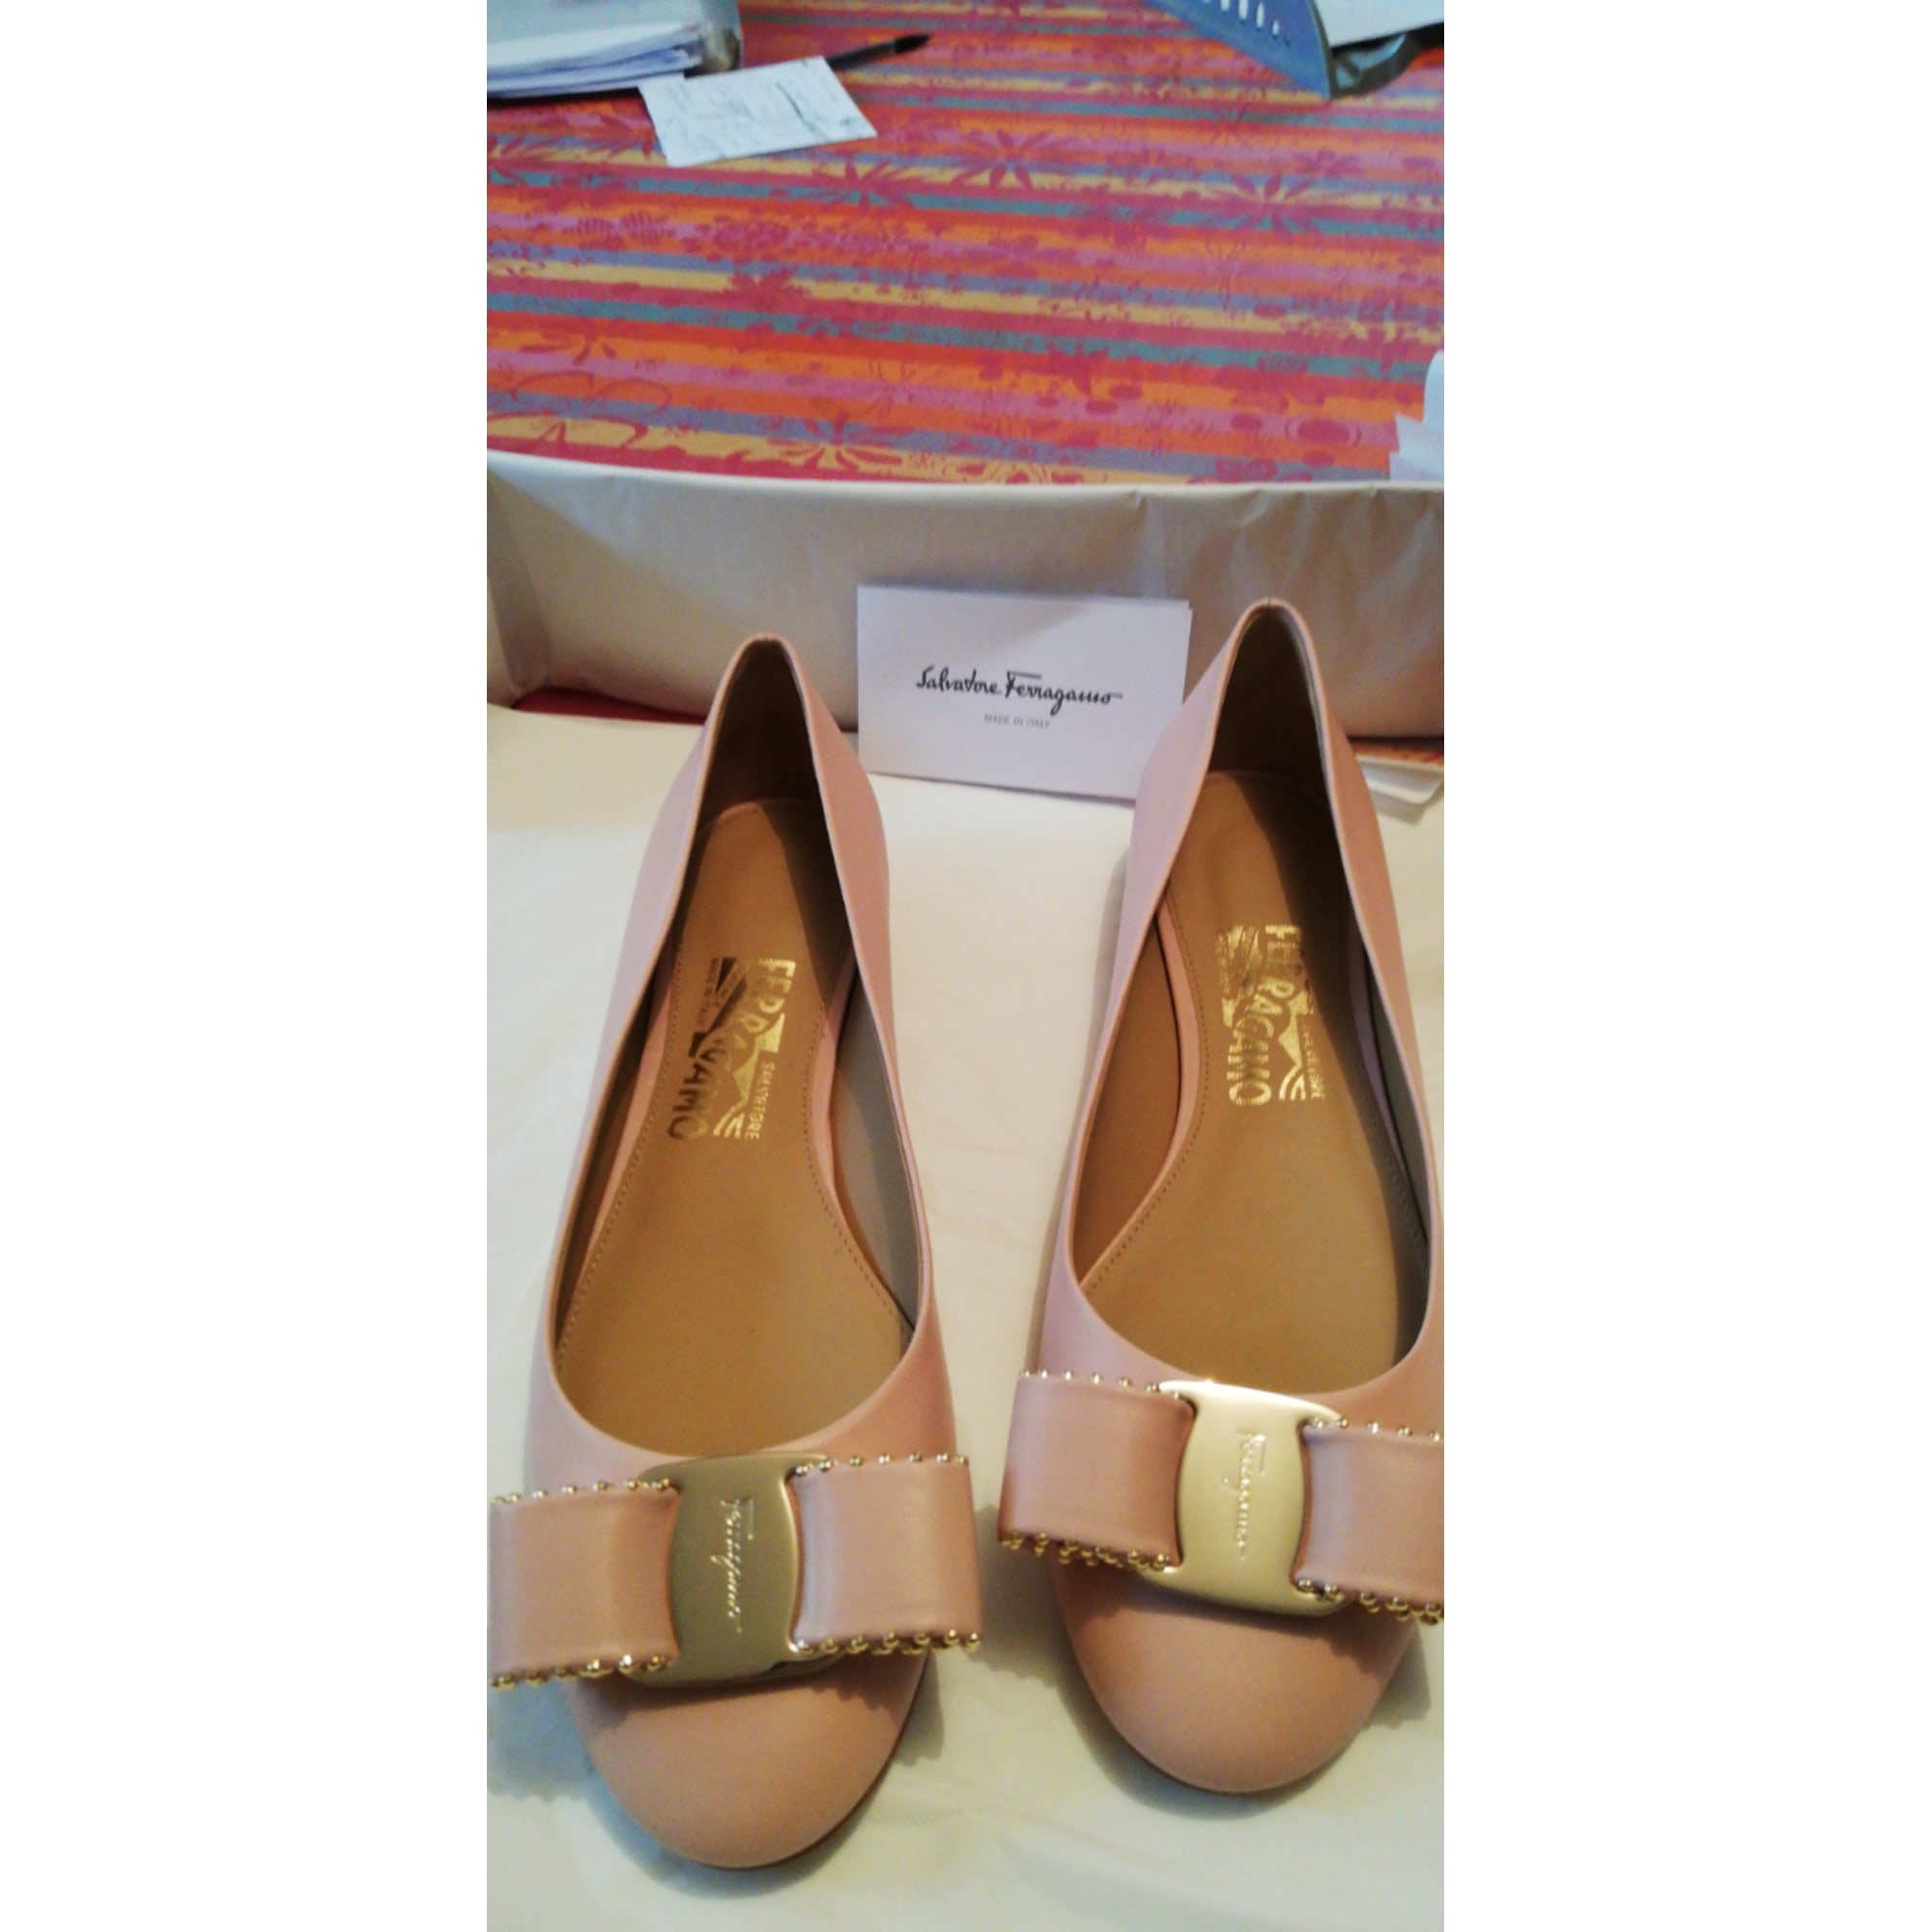 Ballerines SALVATORE FERRAGAMO Rose, fuschia, vieux rose